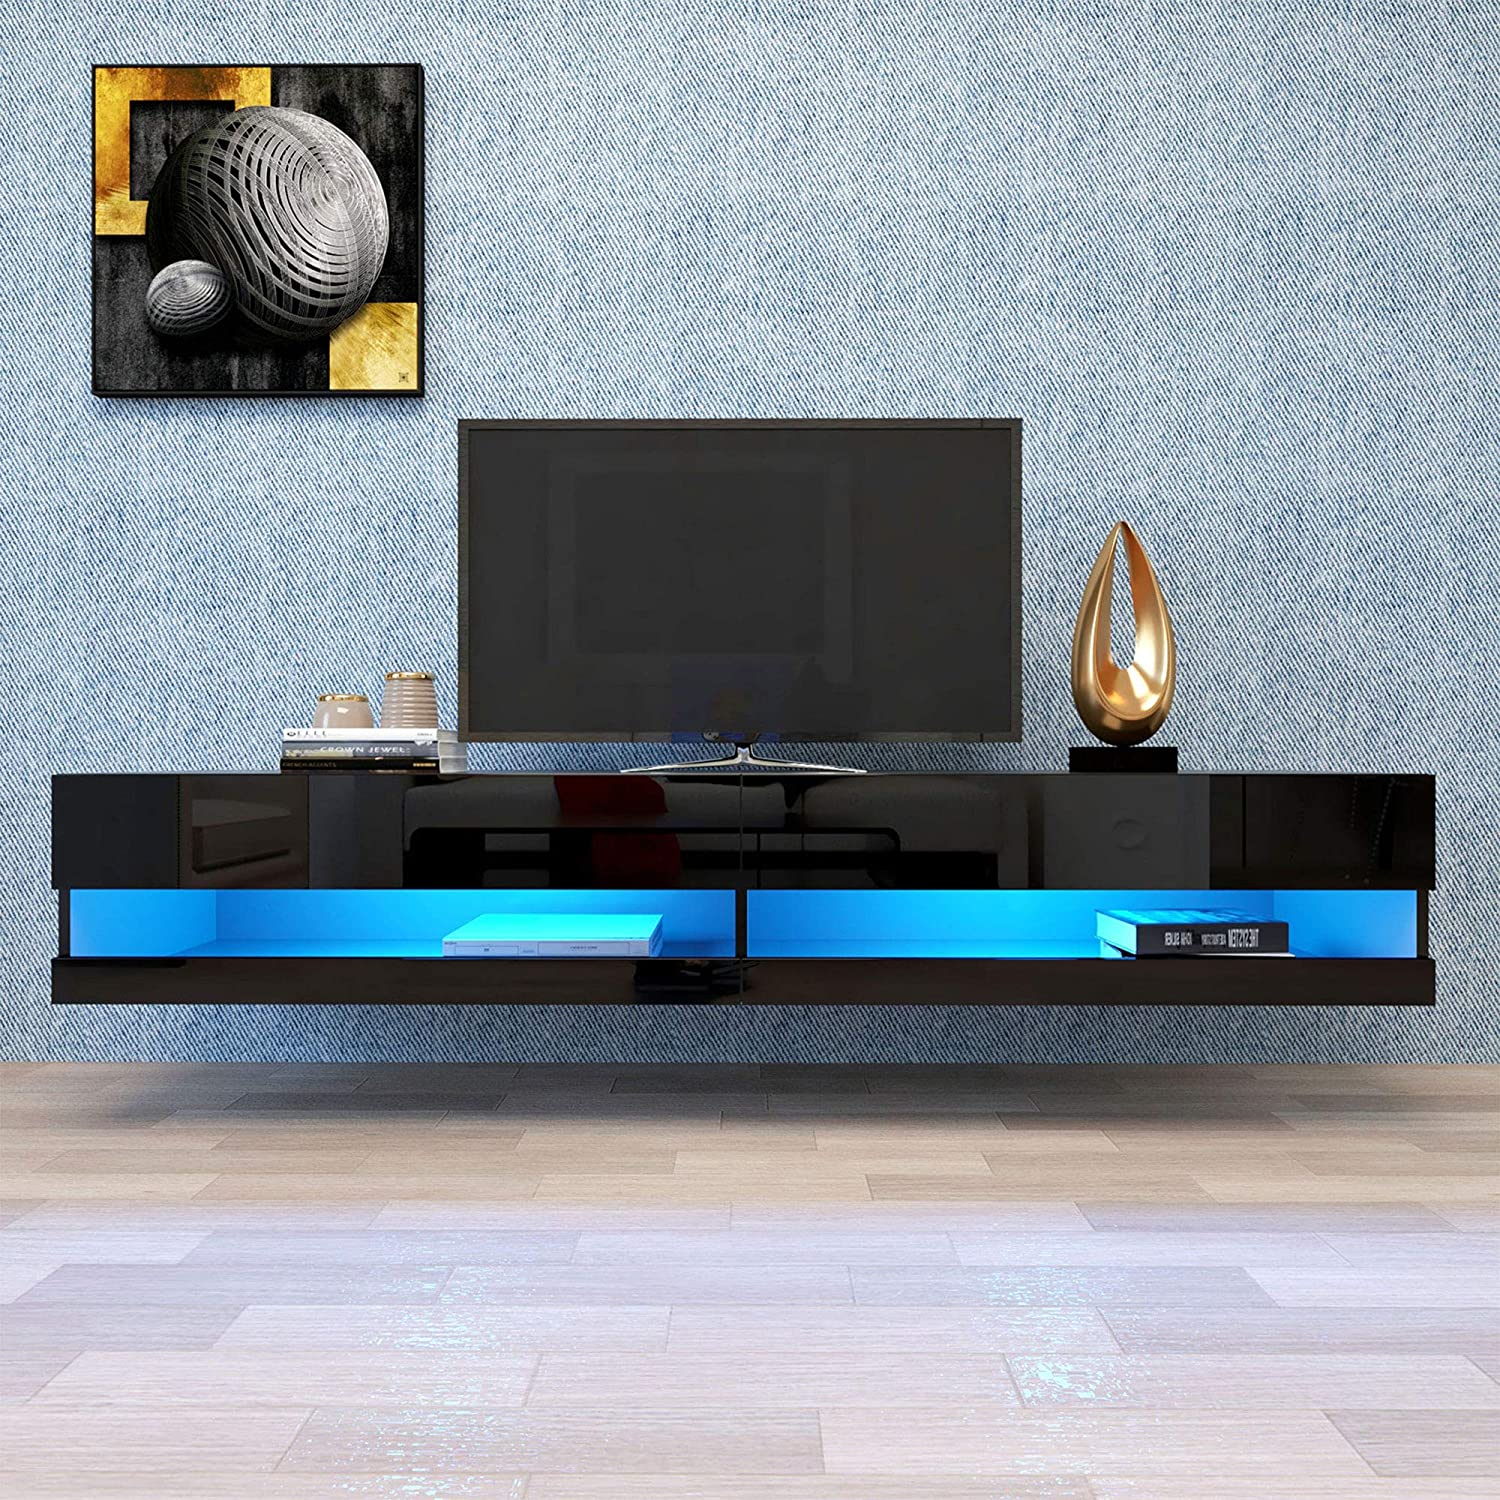 HIAO 71 Inch TV Stand Cabinet Wall Mounted Floating Stand Modern TV Cabinet with 20 Color LED Black Entertainment Center Large Storage Cabinet with Lockers and Drawer for Living Room (Black + White)